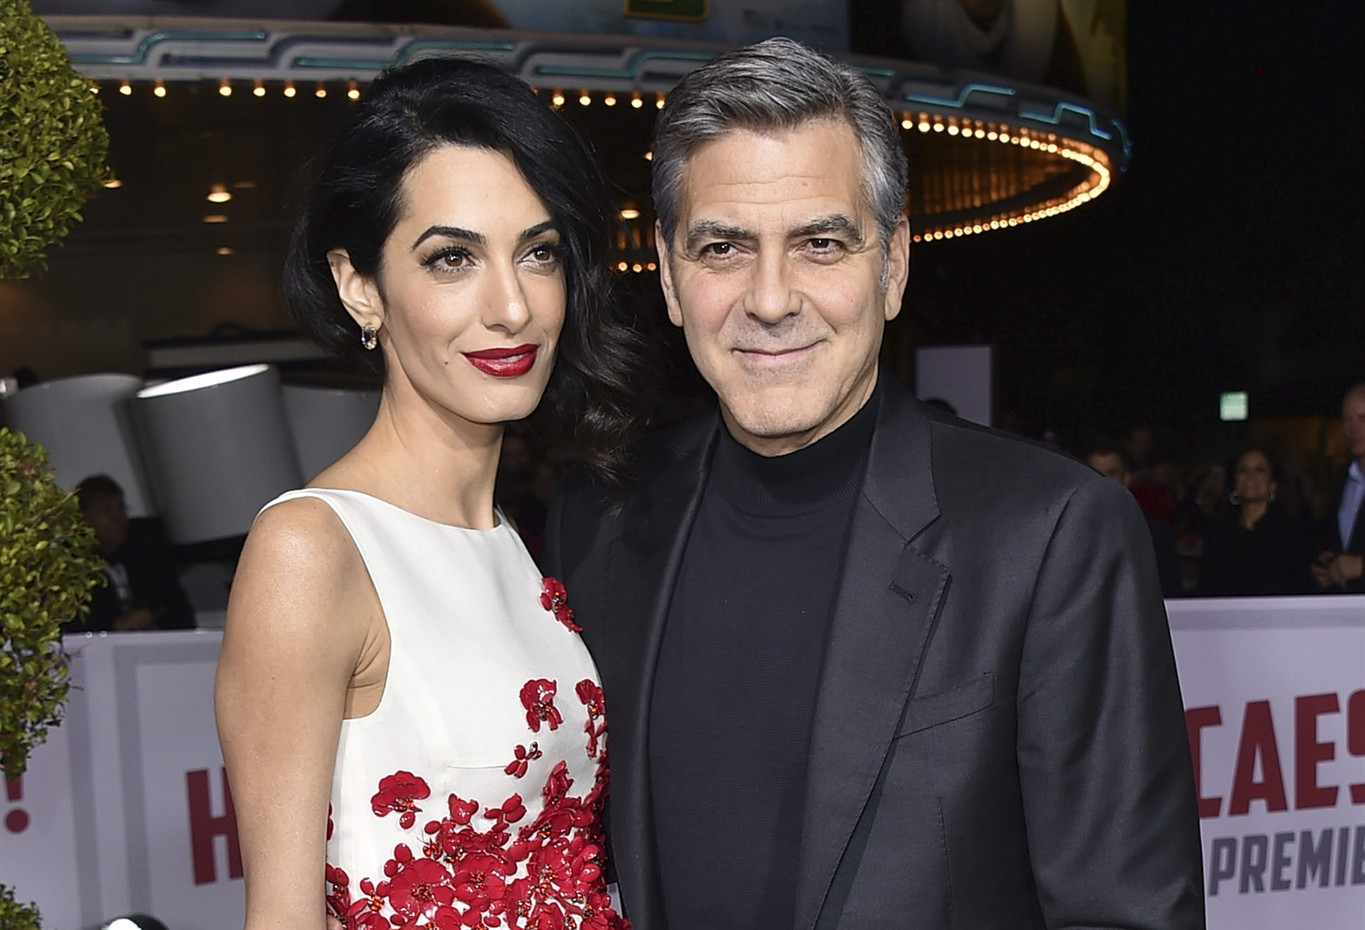 George & Amal Clooney Welcome Twins Ella and Alexander